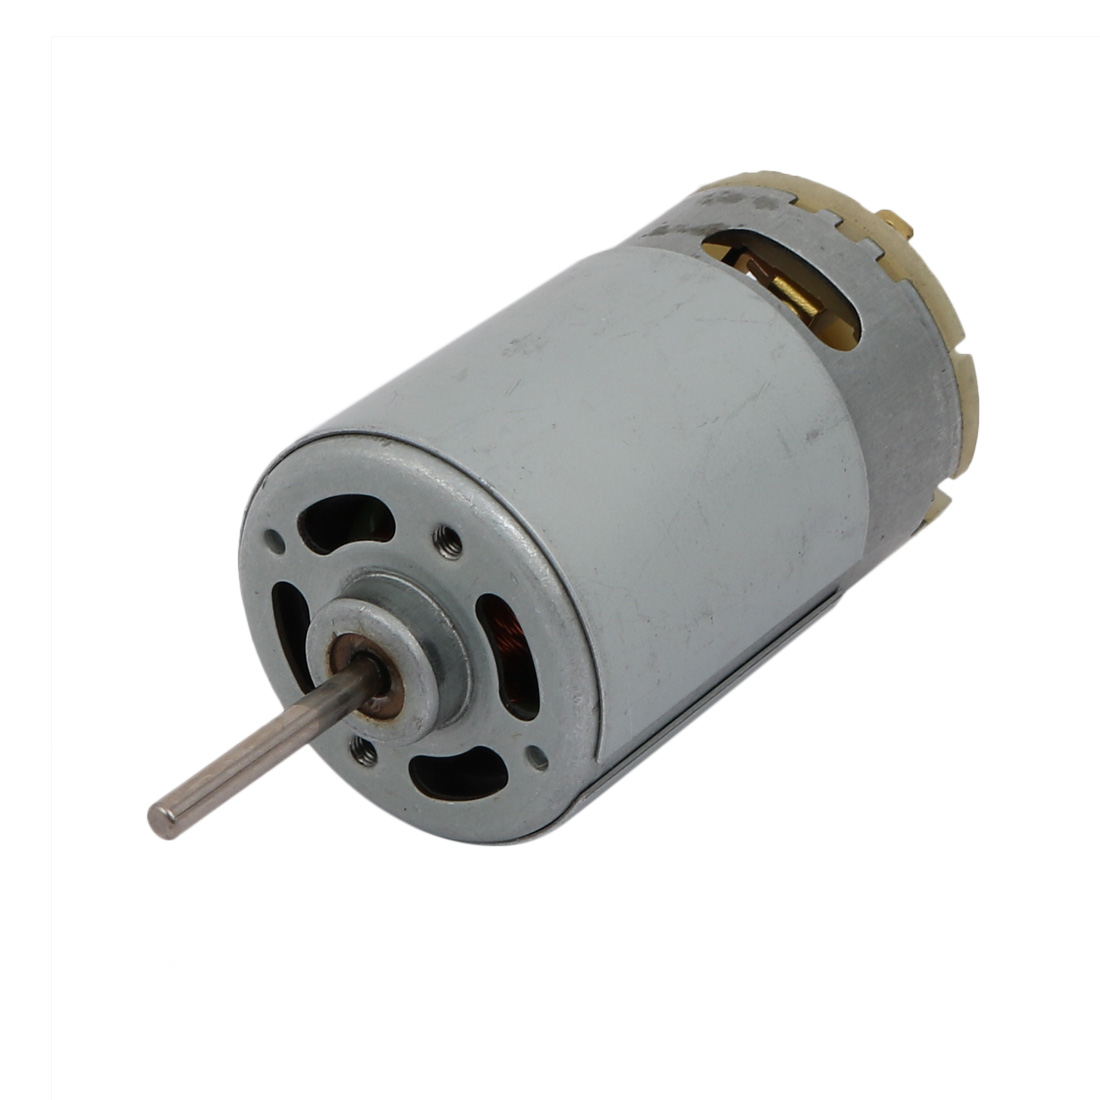 RS-555PC DC24V 4800RPM 3.2mm Dia Shaft Brushed DC Motor for DIY Electric Projects